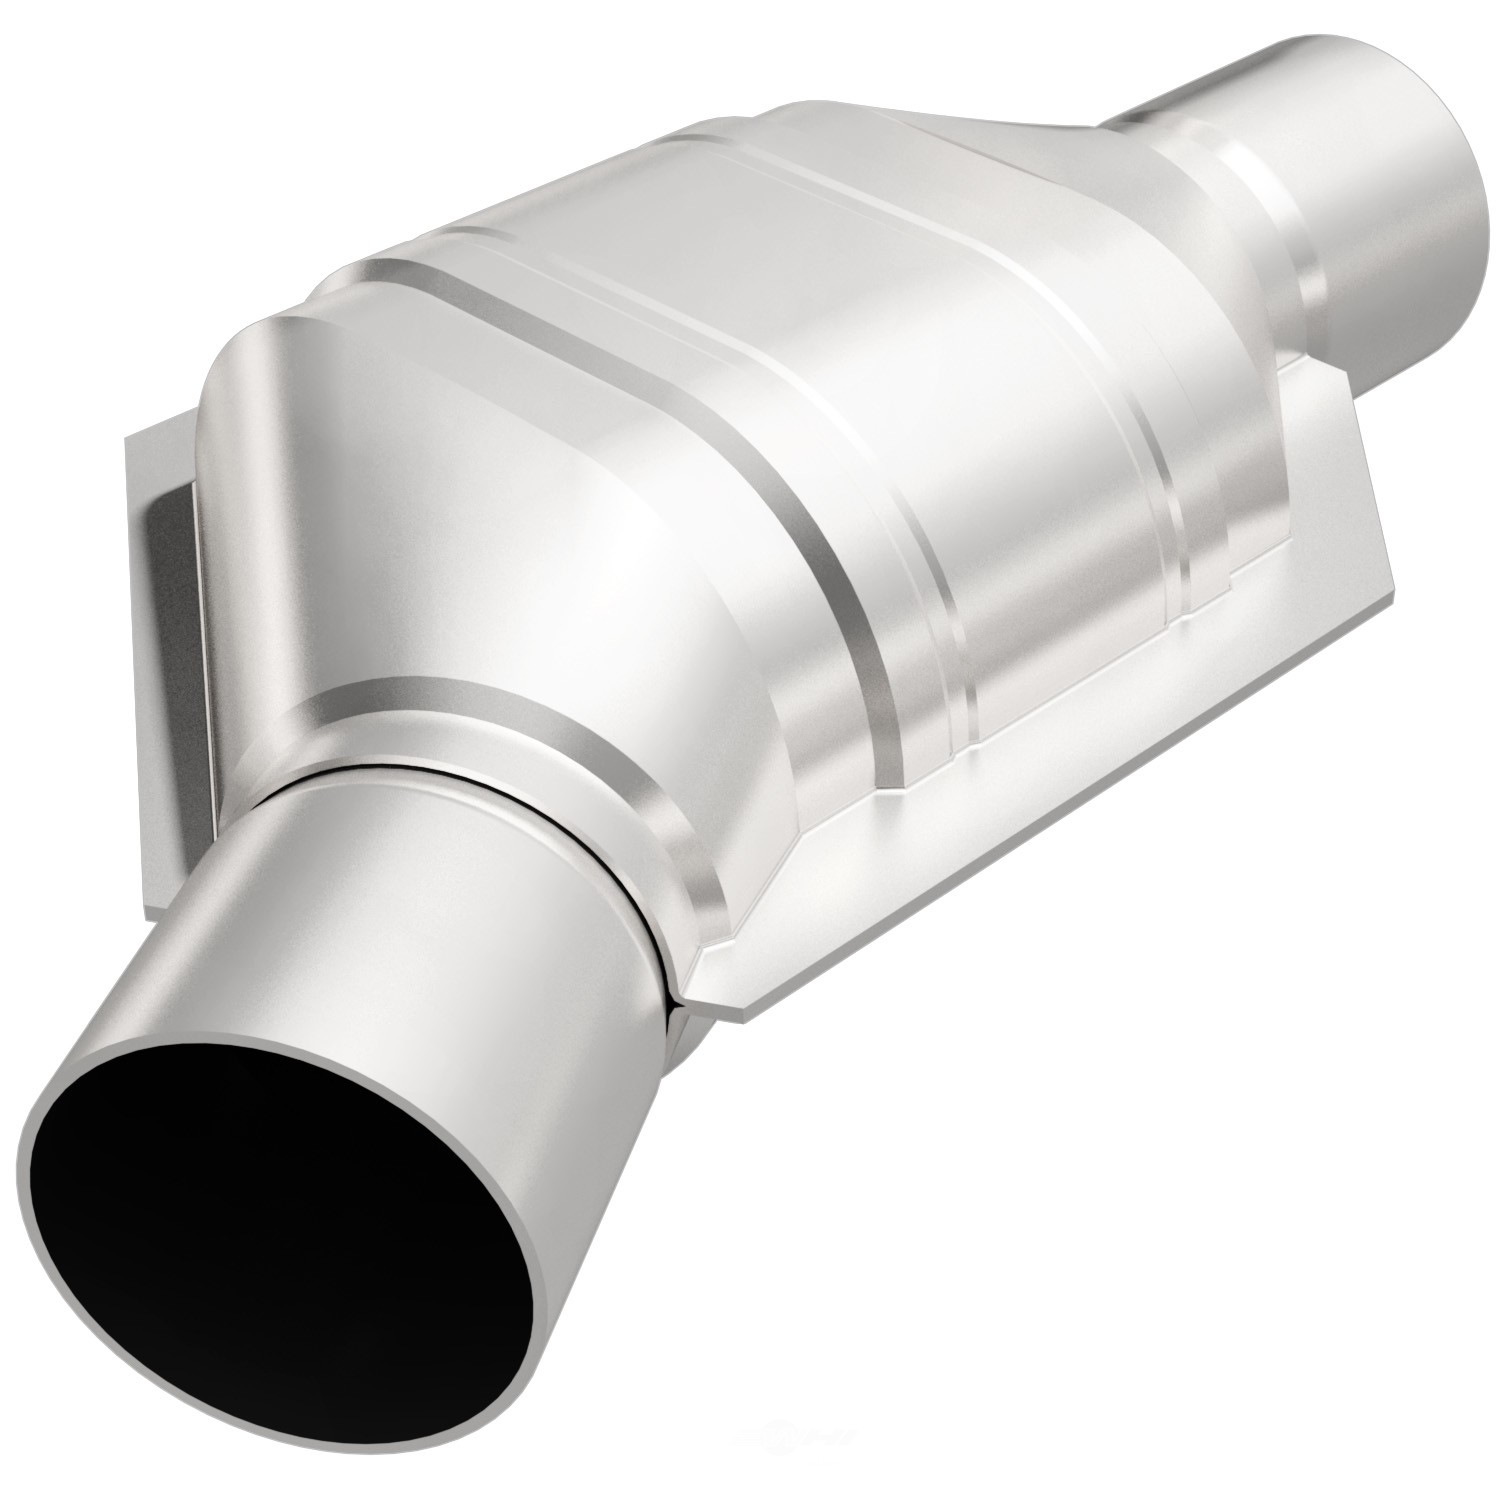 MAGNAFLOW CARB COMPLIANT CONVERTER - 2.50in. Universal California OBDII Catalytic Converter (Front Left) - MFC 447176